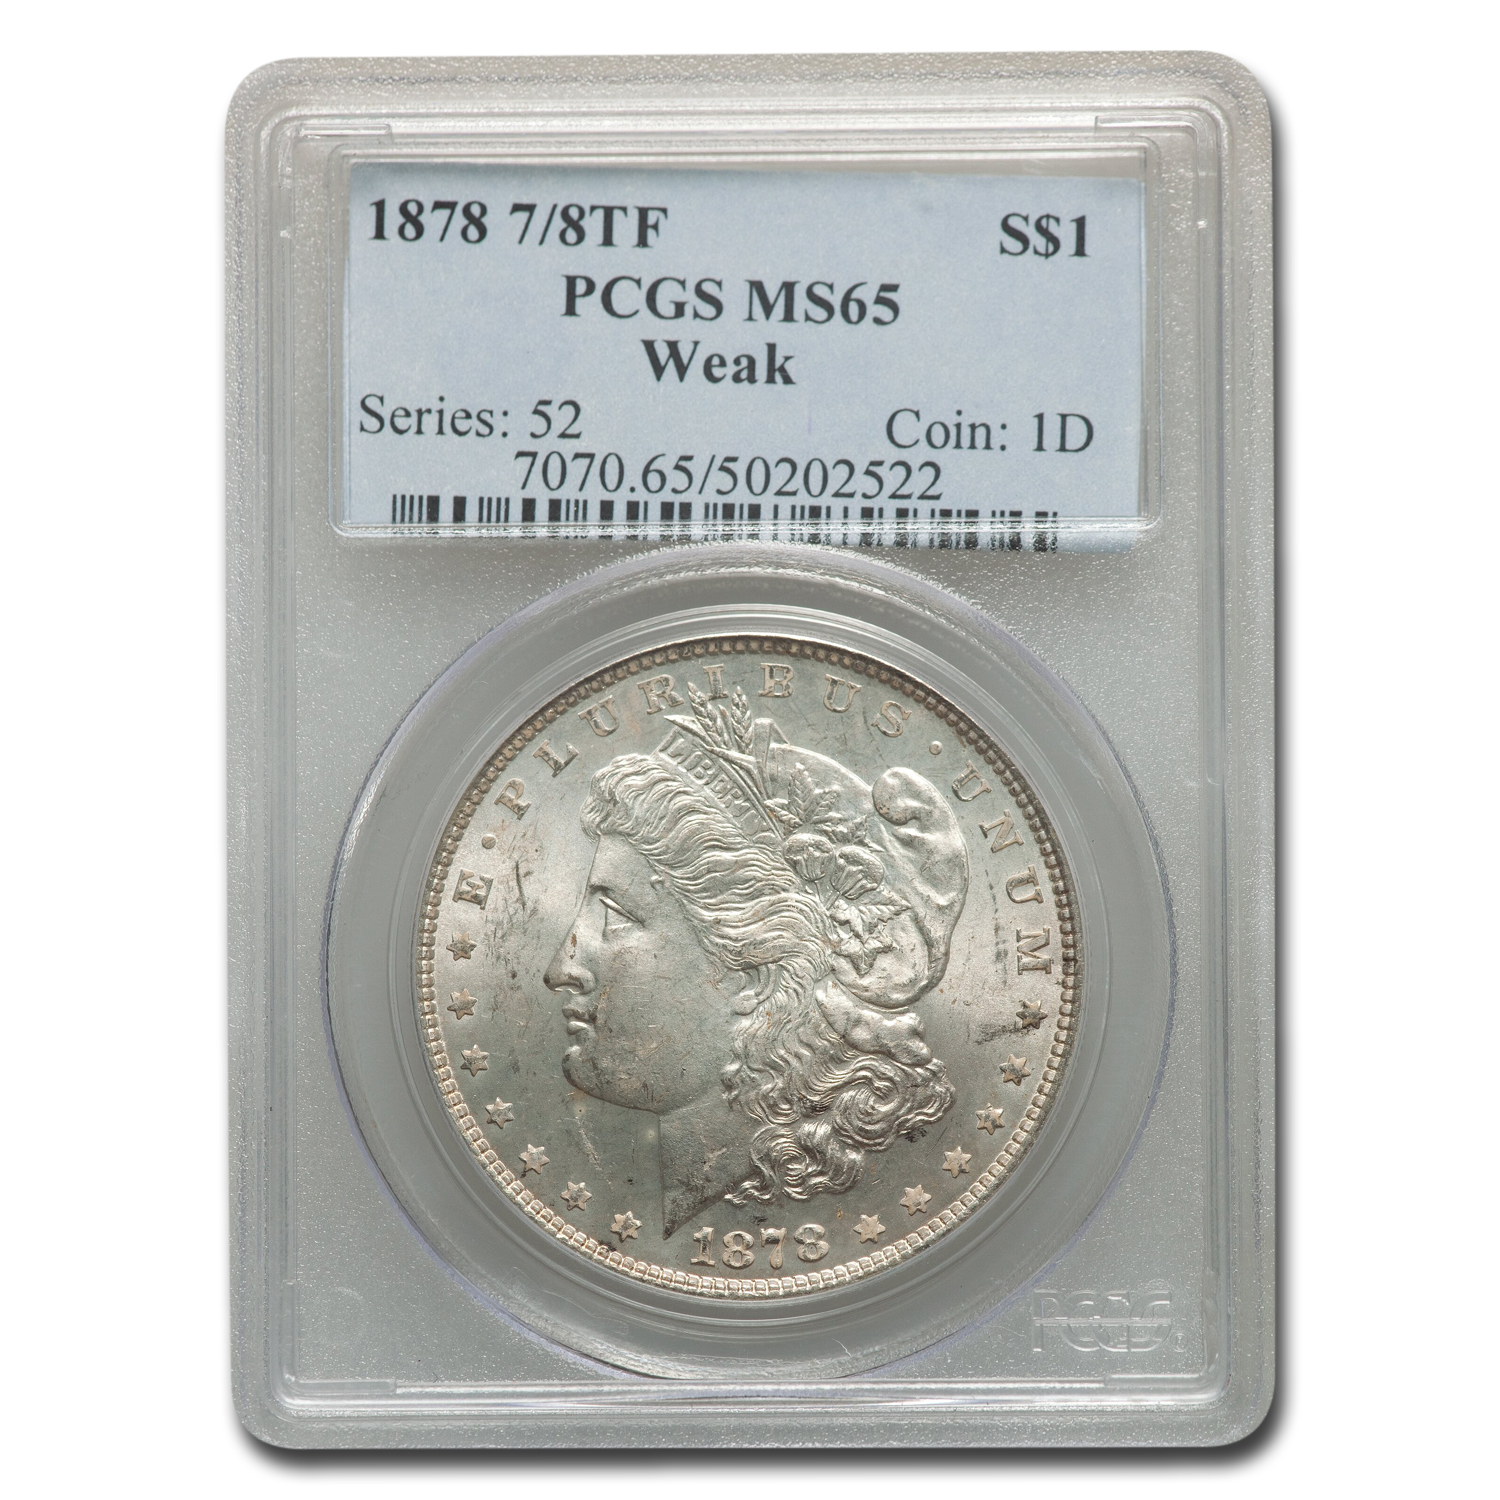 1878 Morgan Dollar 7/8 TF Weak MS-65 PCGS